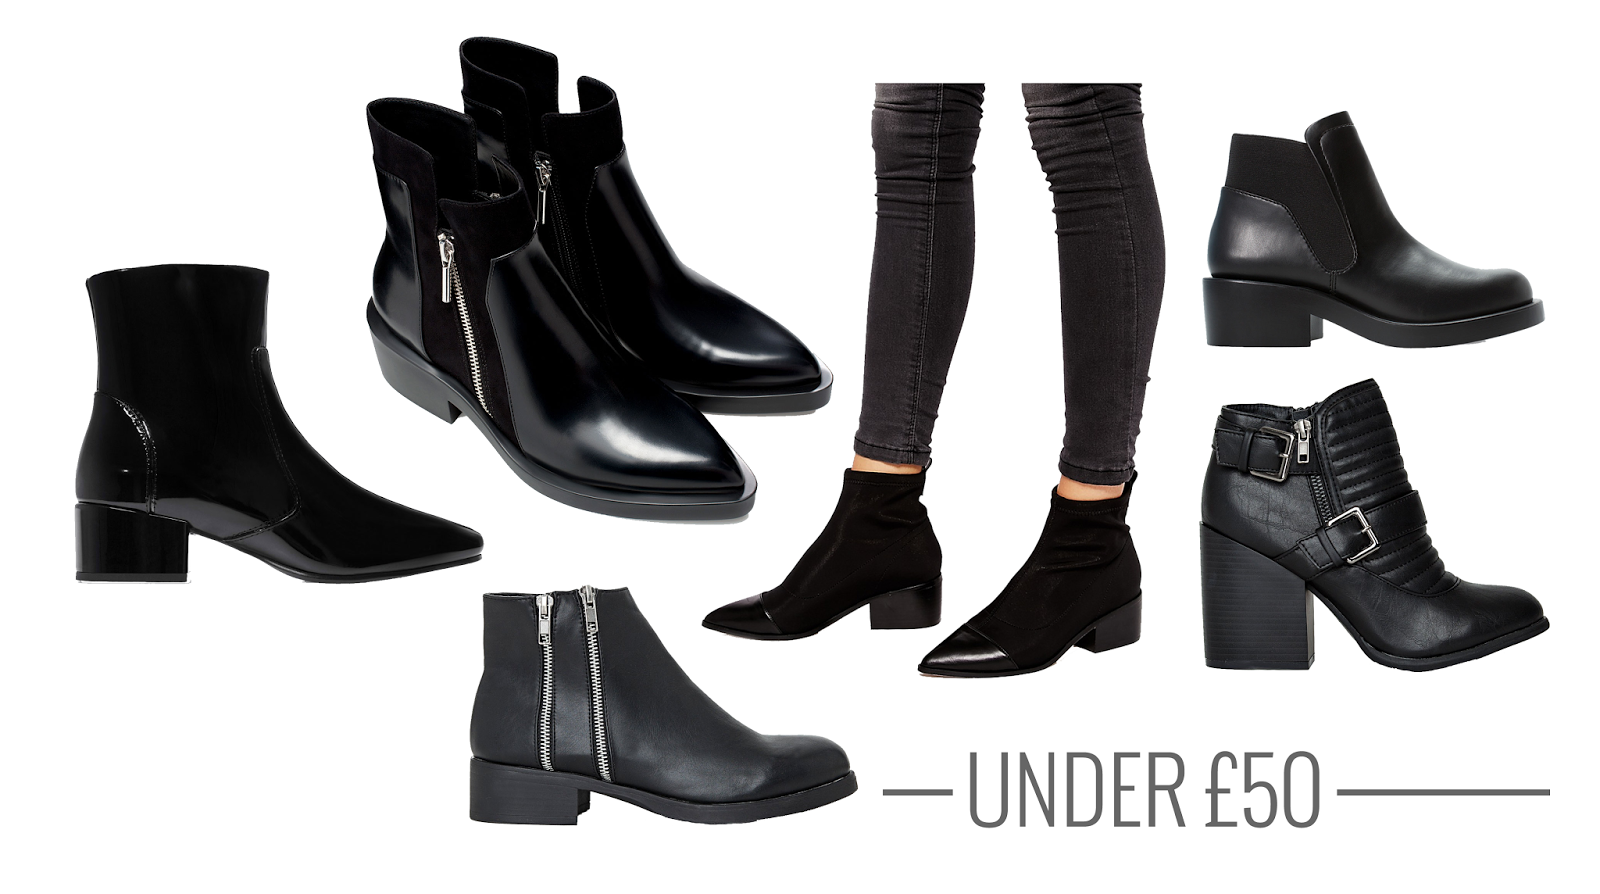 ankle boots under £50